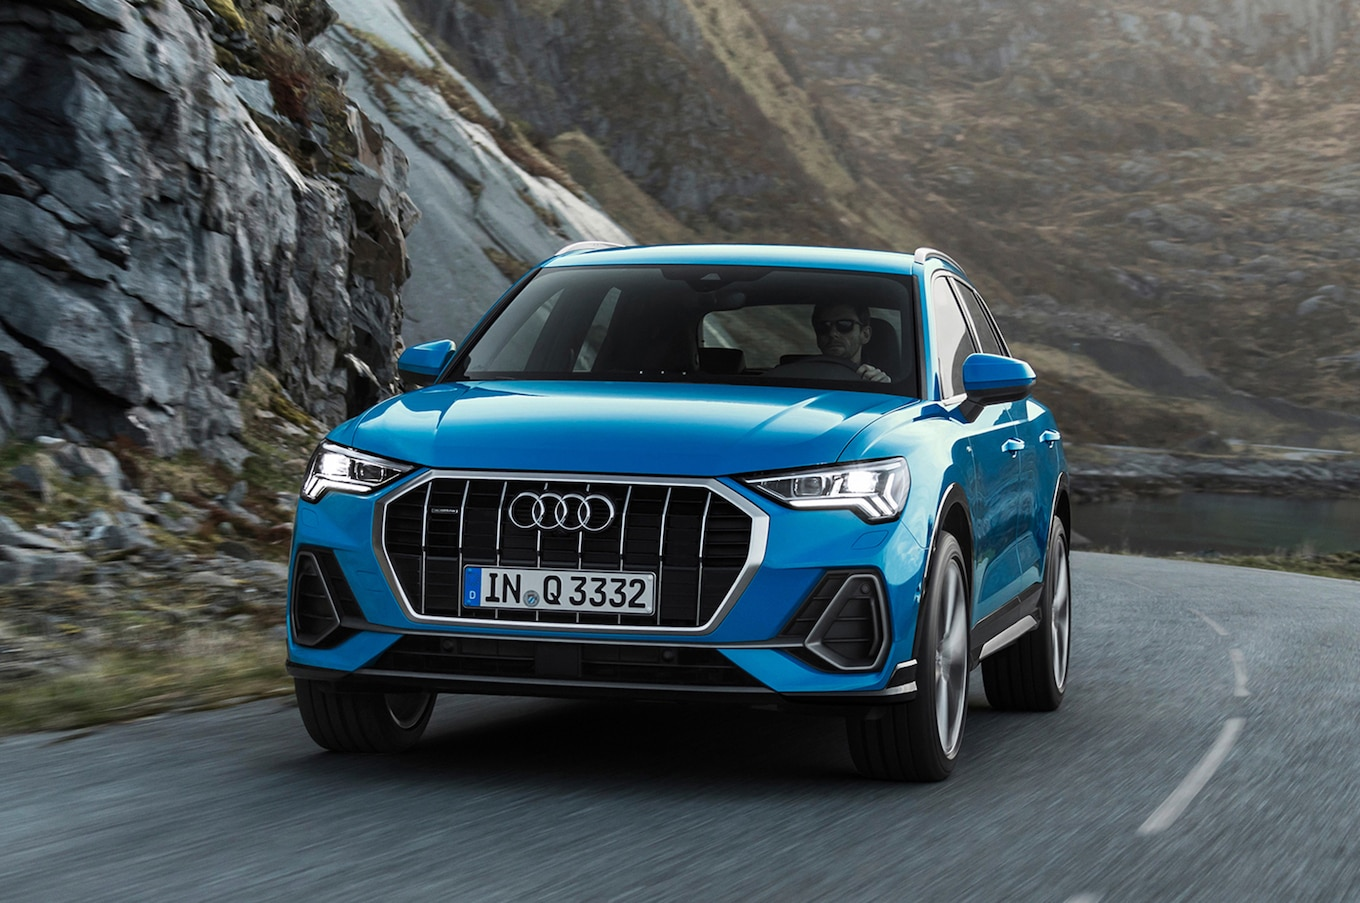 Garage Audi Tours 2019 Audi Q3 First Look Much More Modern Motortrend